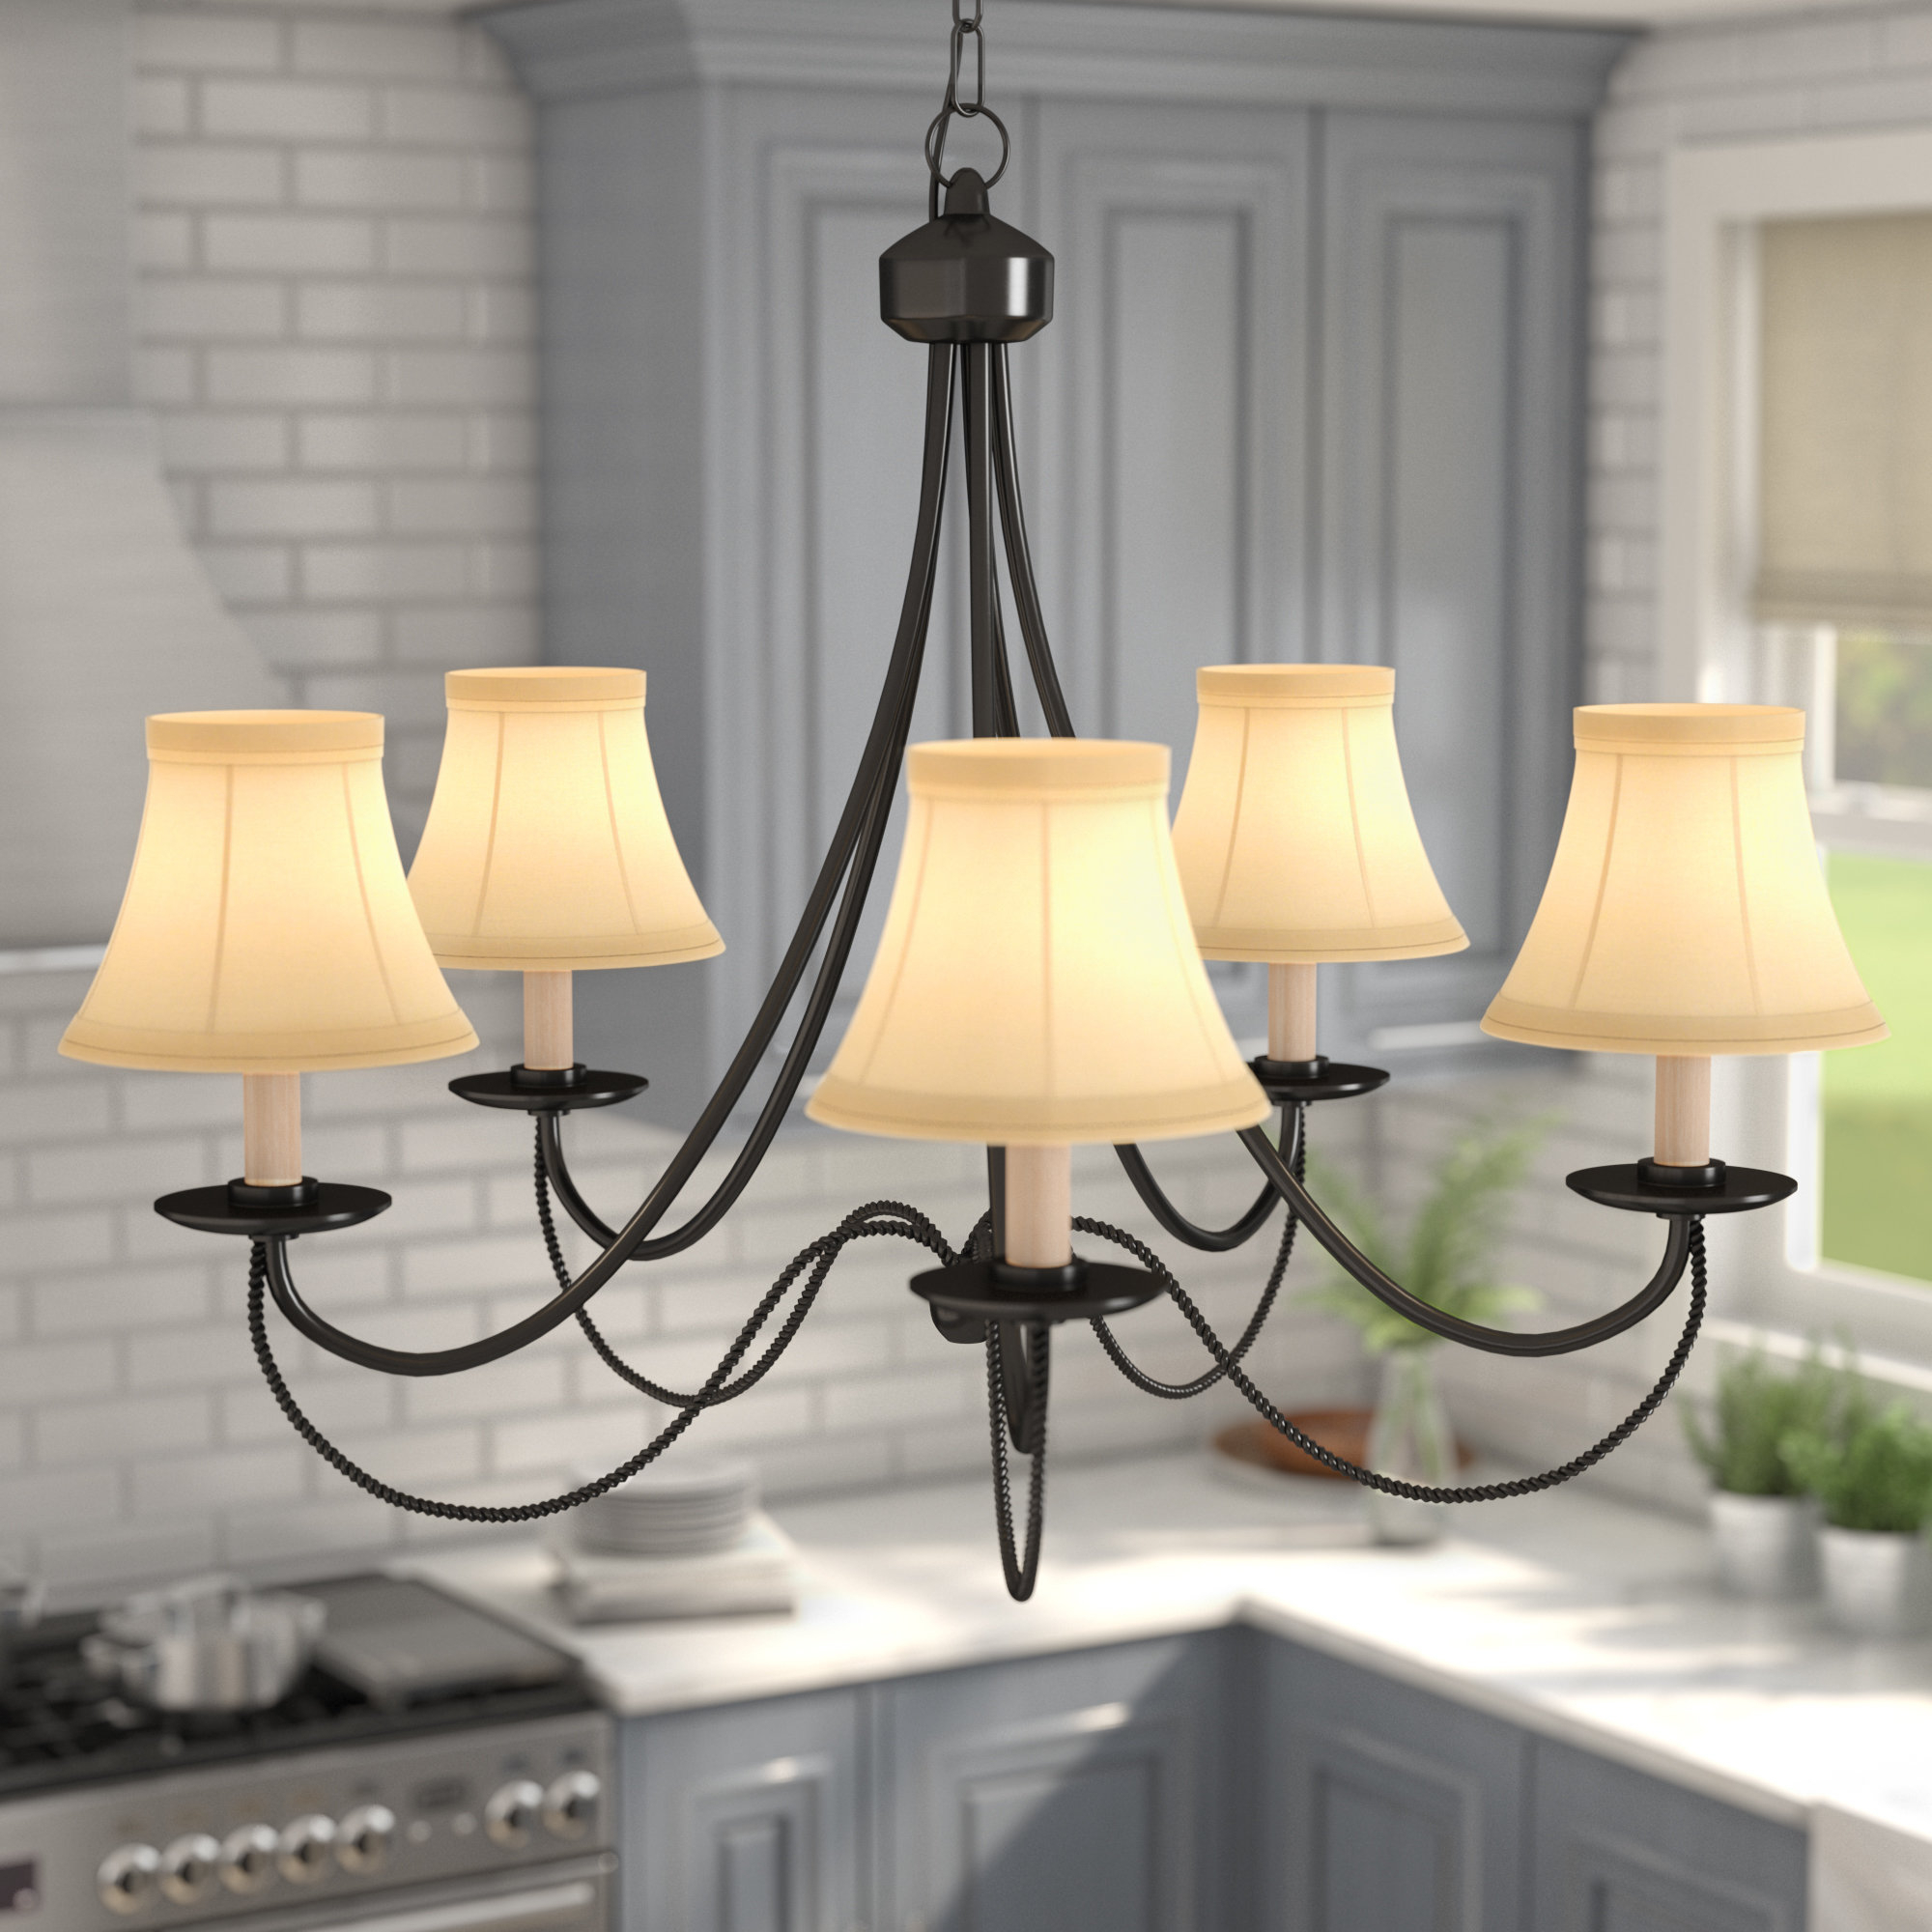 Widely Used Venilale 5 Light Shaded Chandelier Within Suki 5 Light Shaded Chandeliers (View 4 of 20)